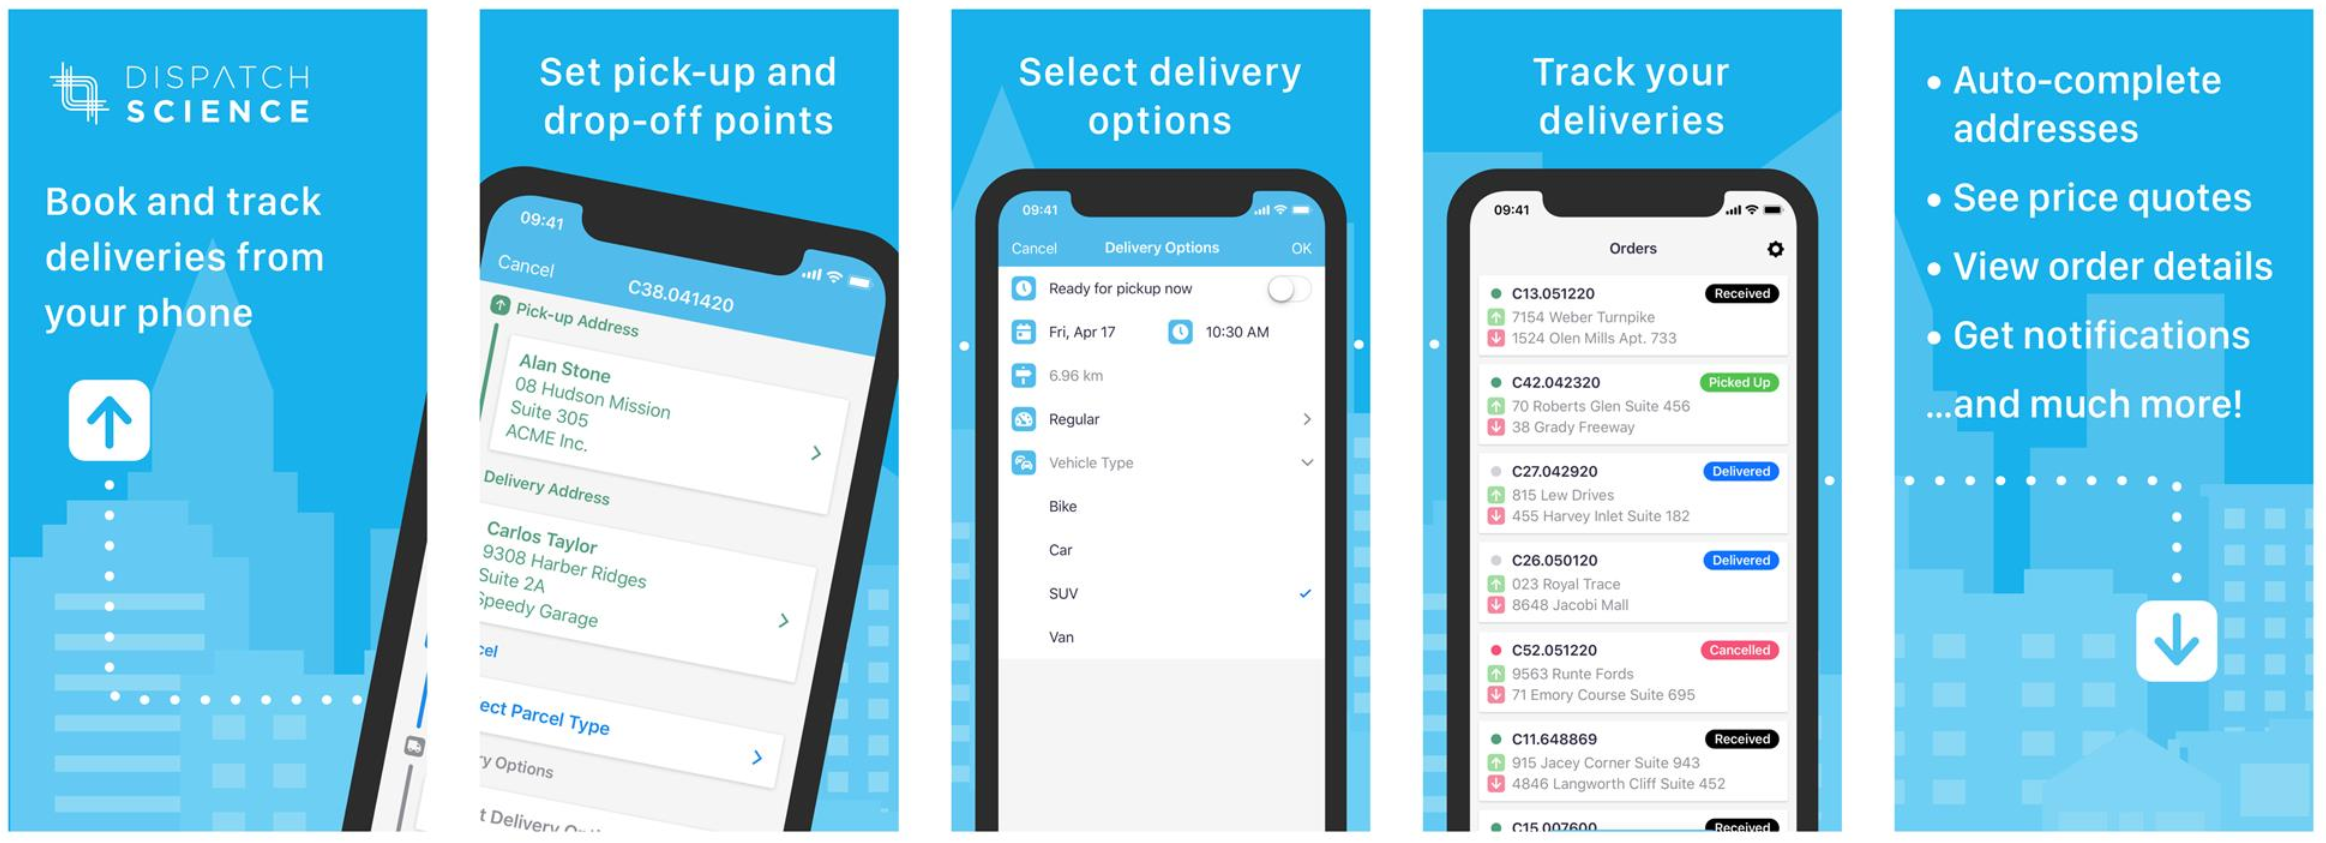 Dispatch Science Software - Customer mobile self-service order booking app